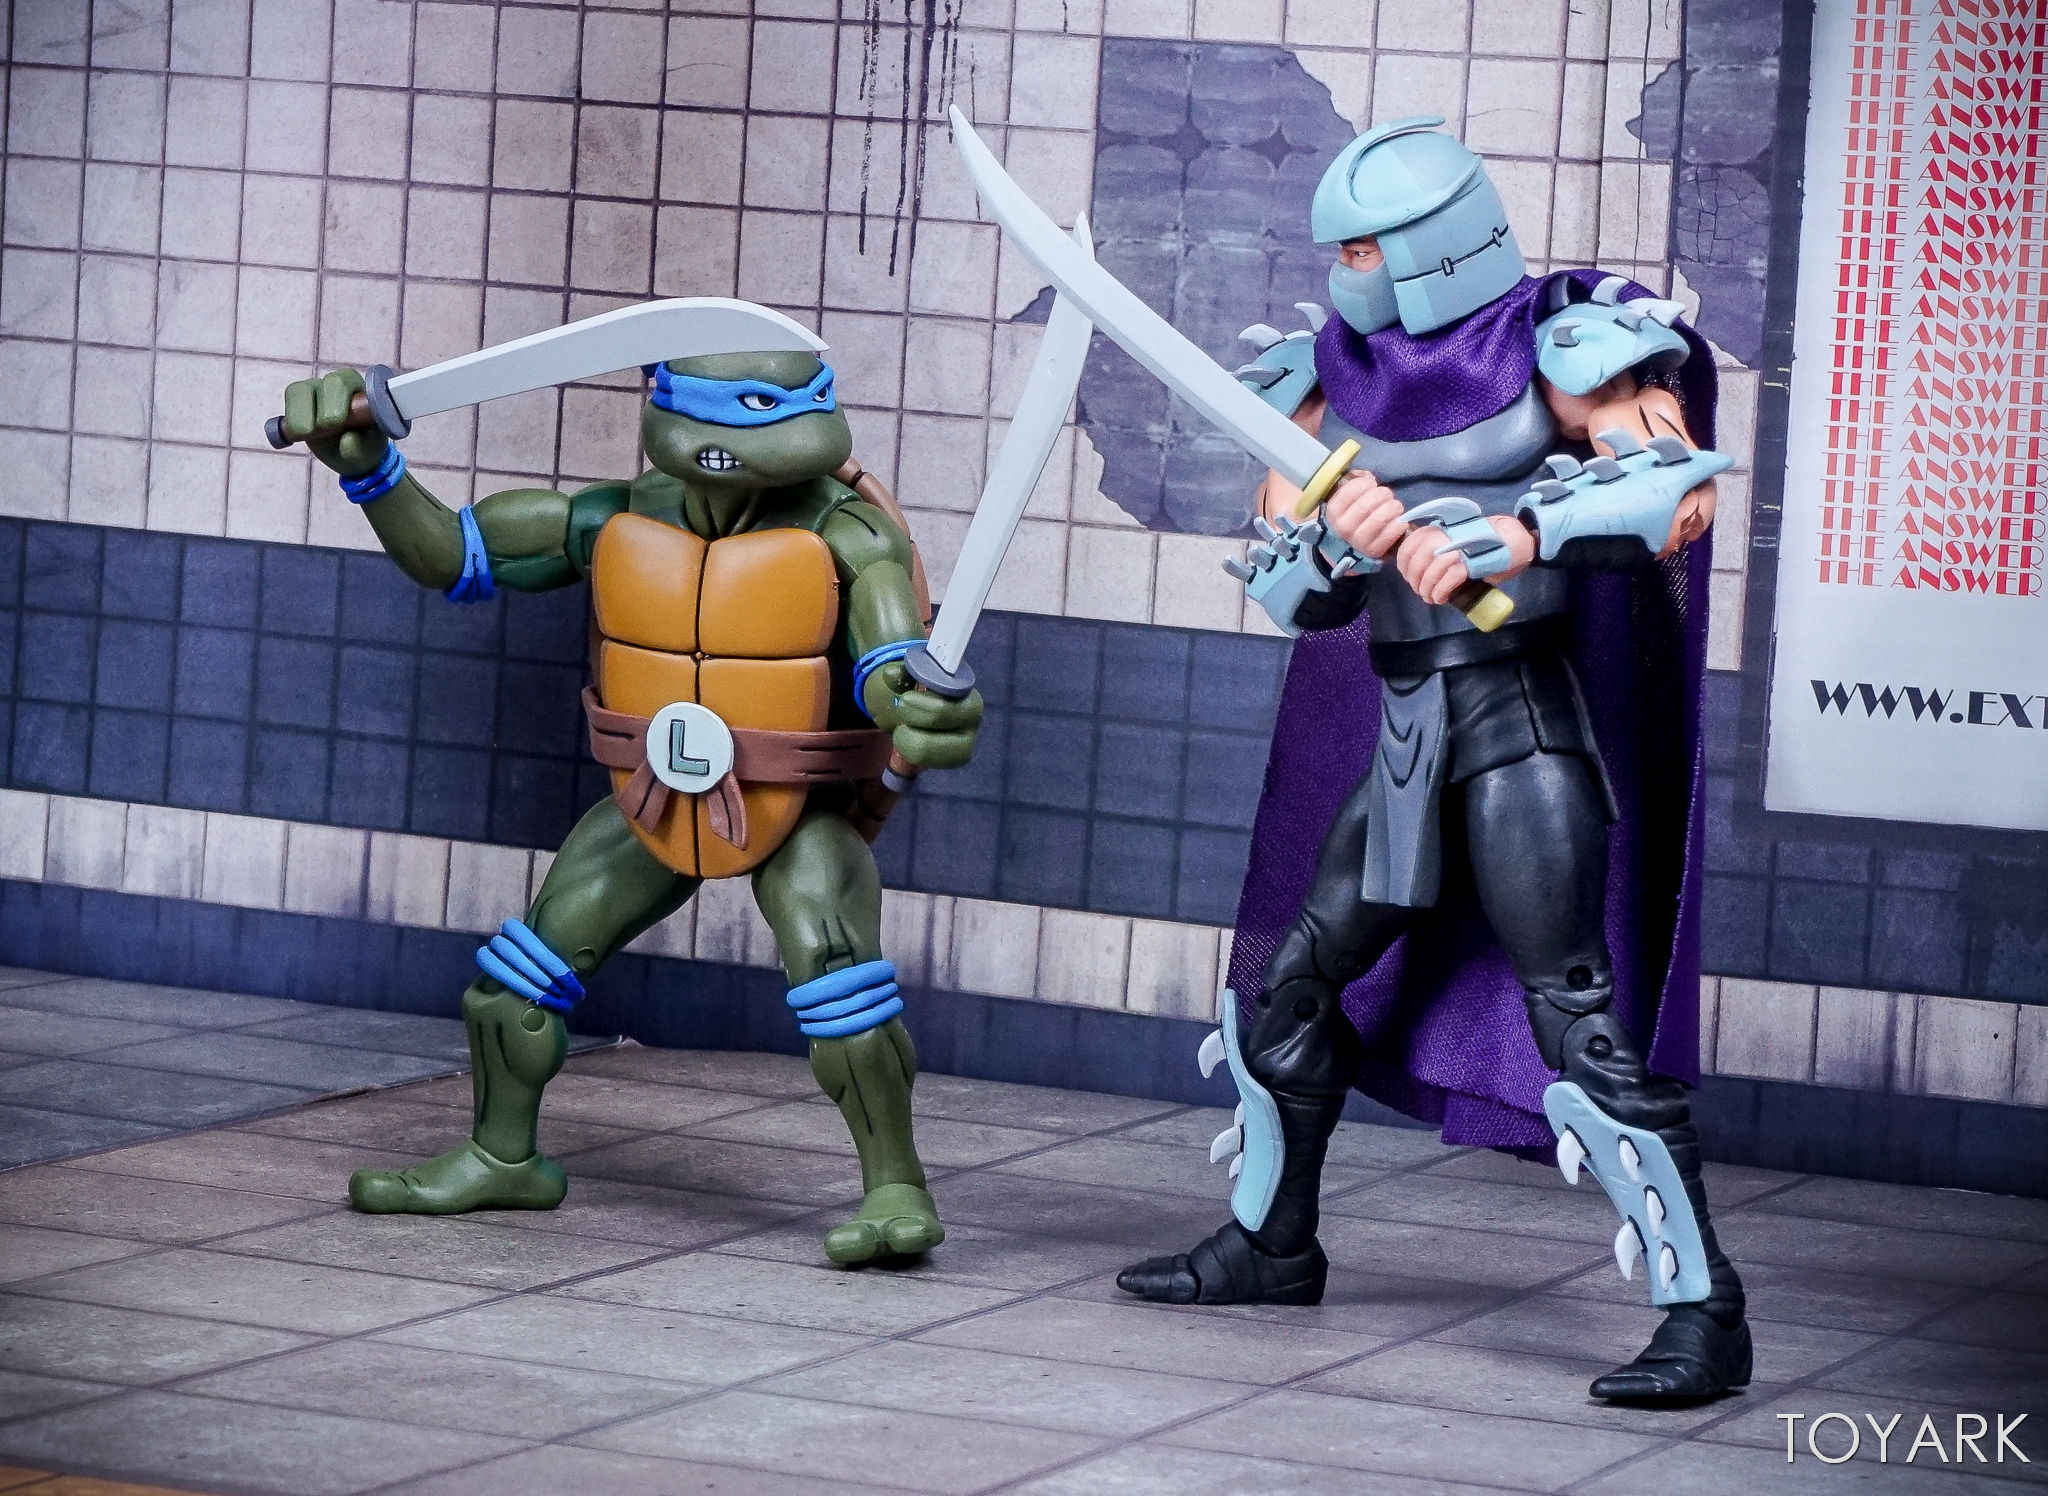 http://news.toyark.com/wp-content/uploads/sites/4/2017/07/NECA-SDCC-2017-Toon-TMNT-071.jpg